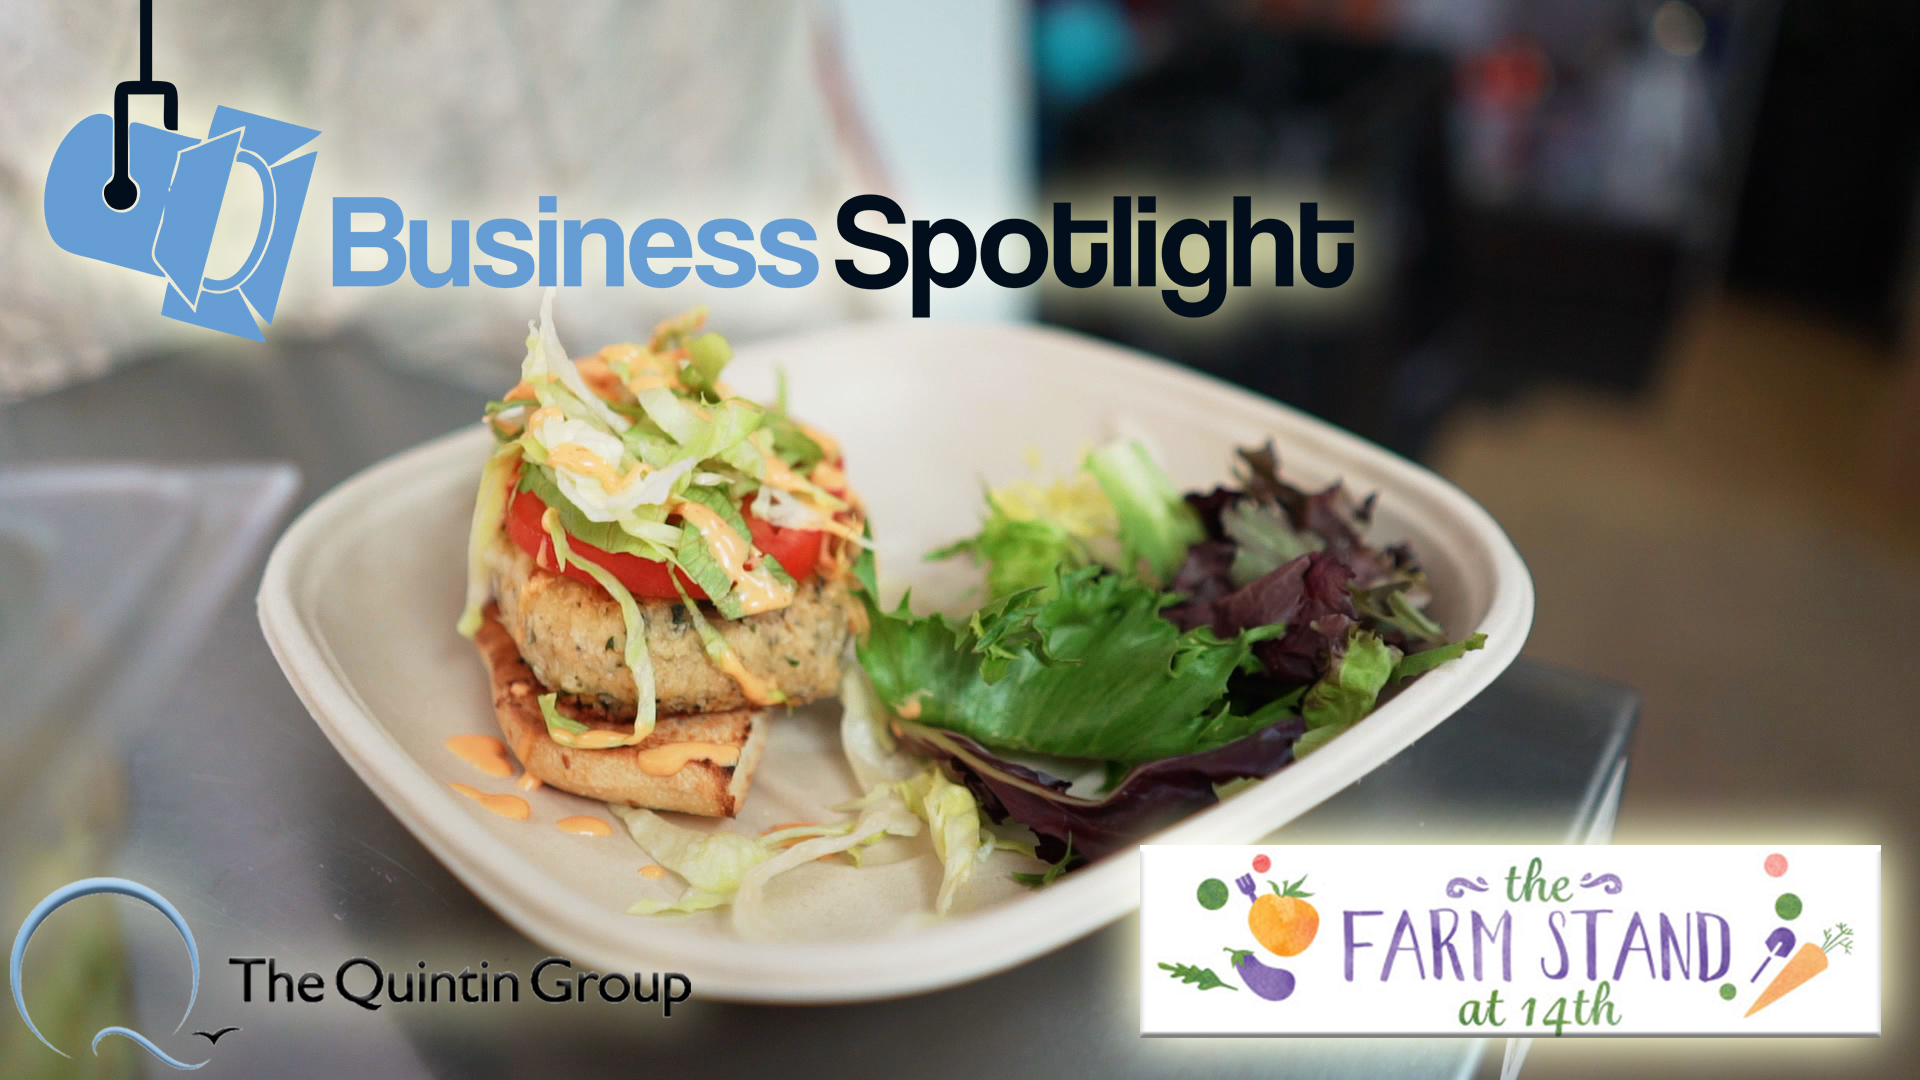 Business Spotlight: The Farm Stand at 14th